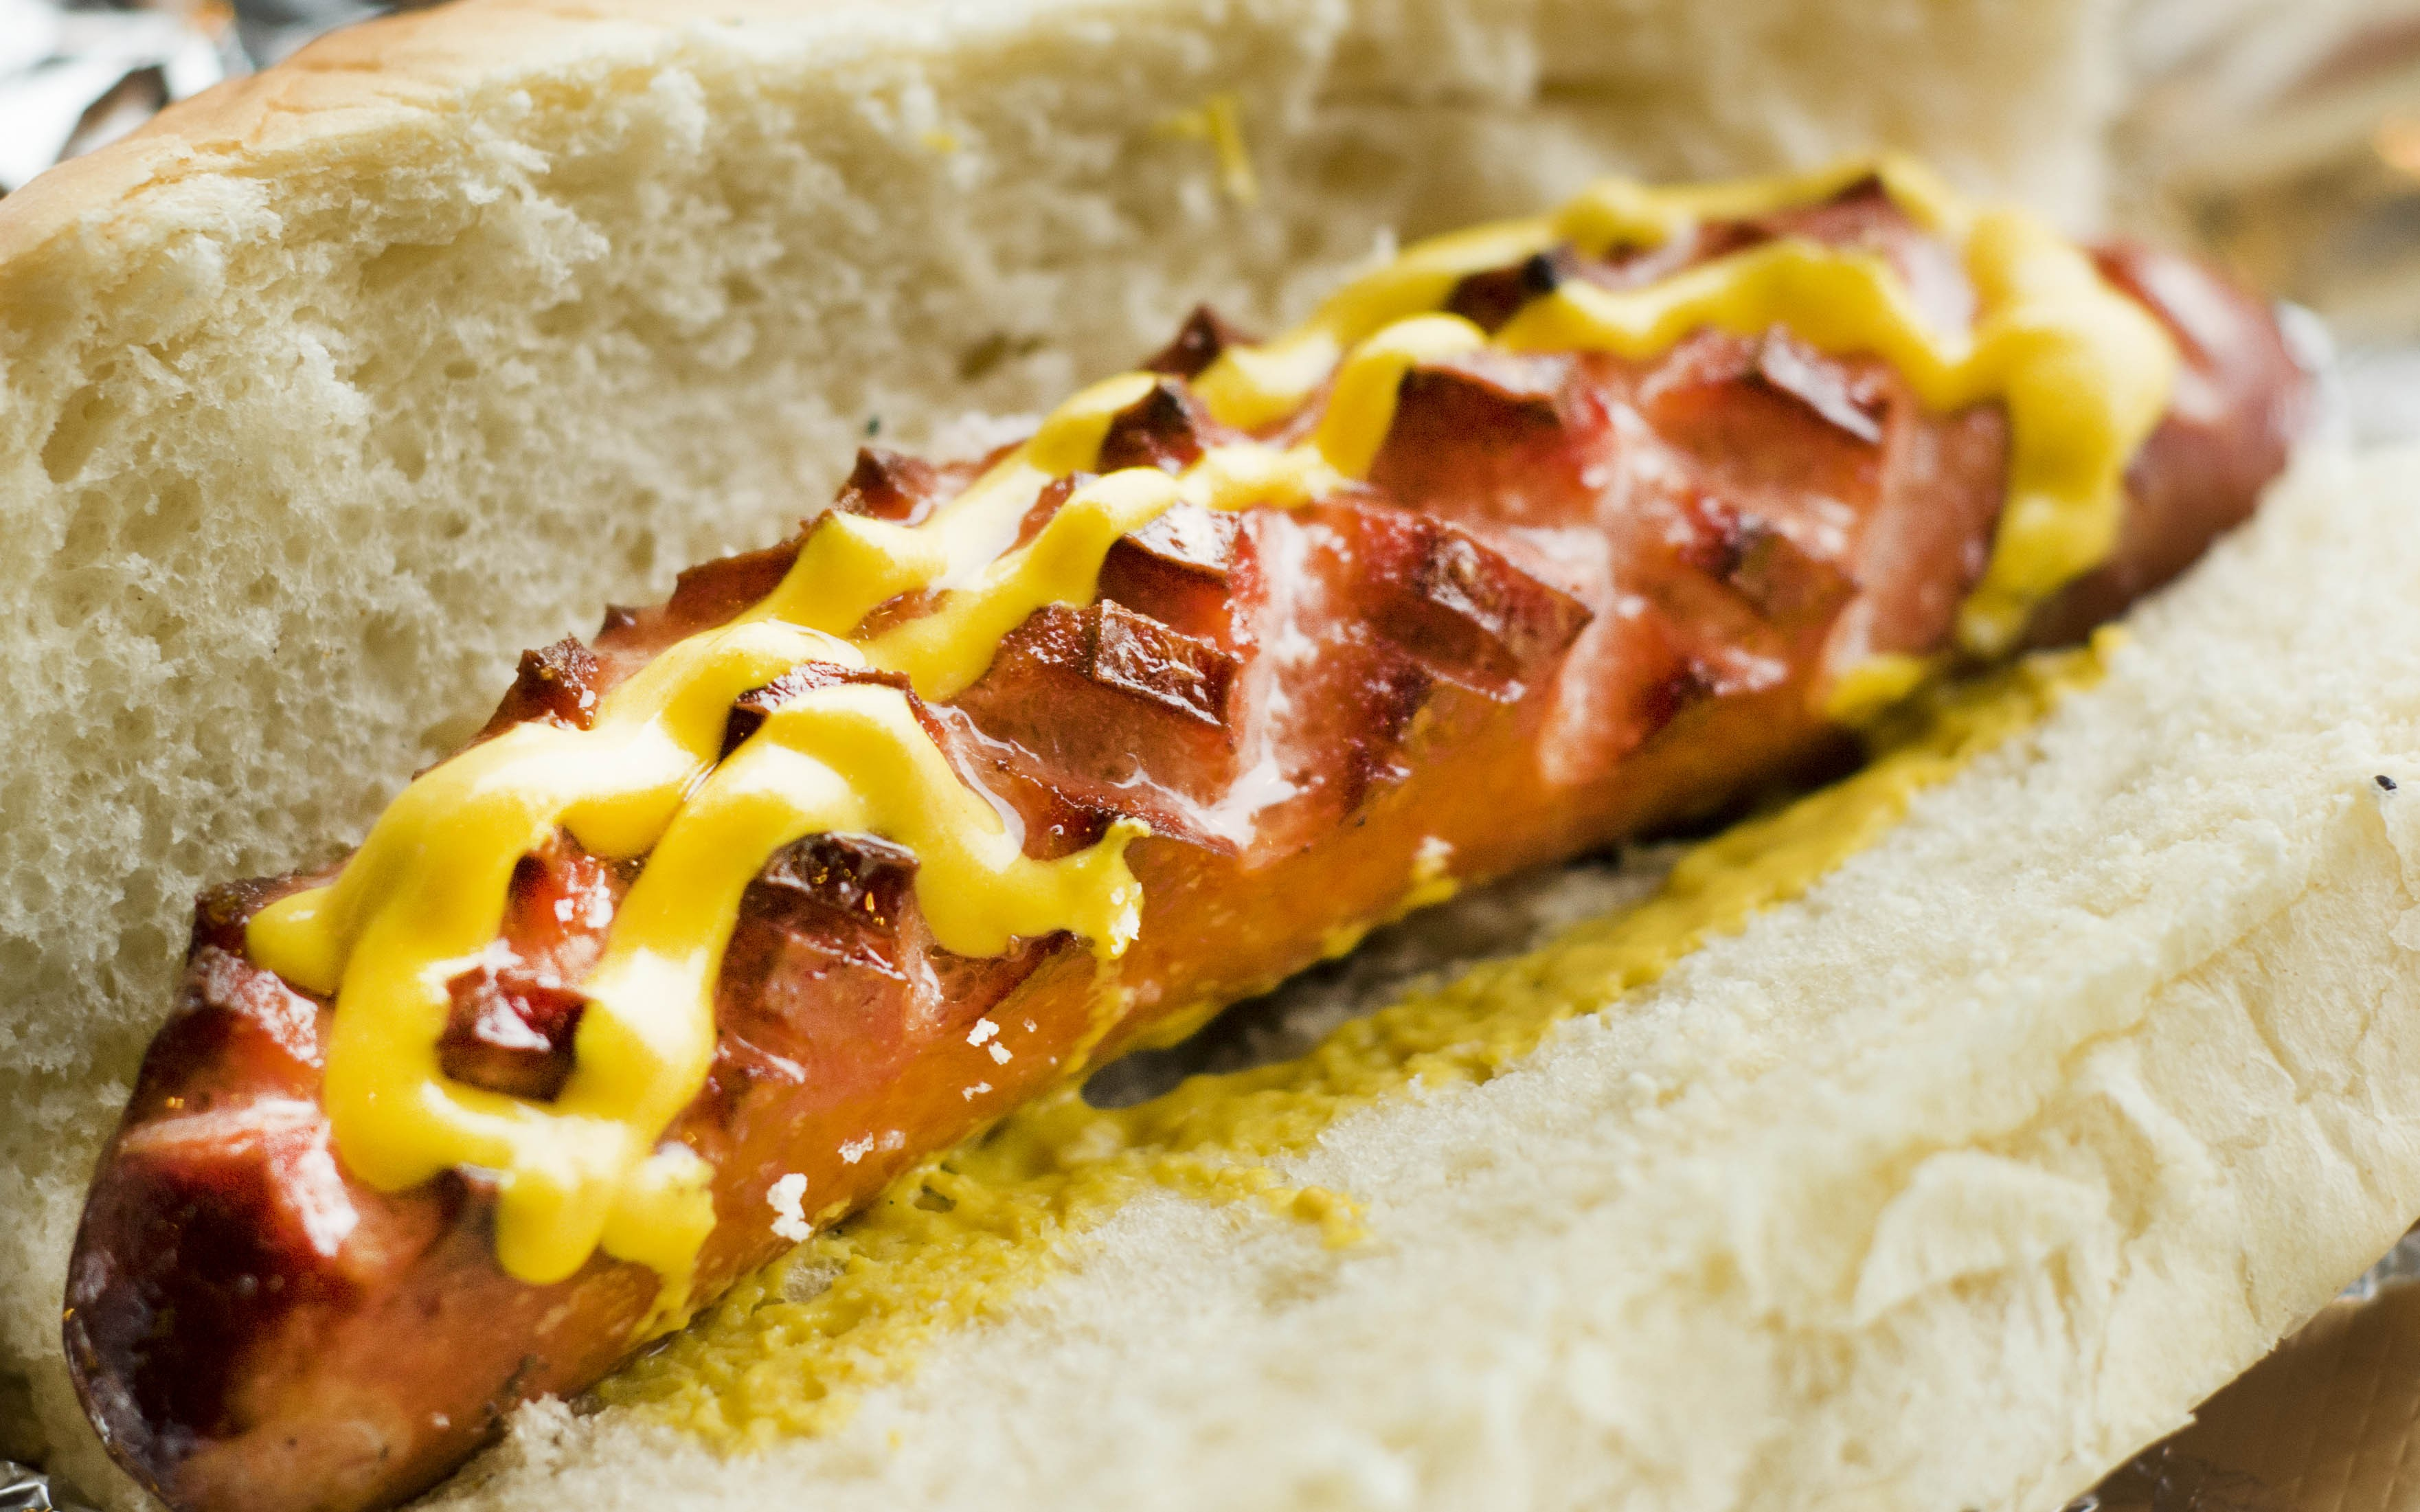 chargrilled, gourmet hot dog purveyor doggy style opens soon in